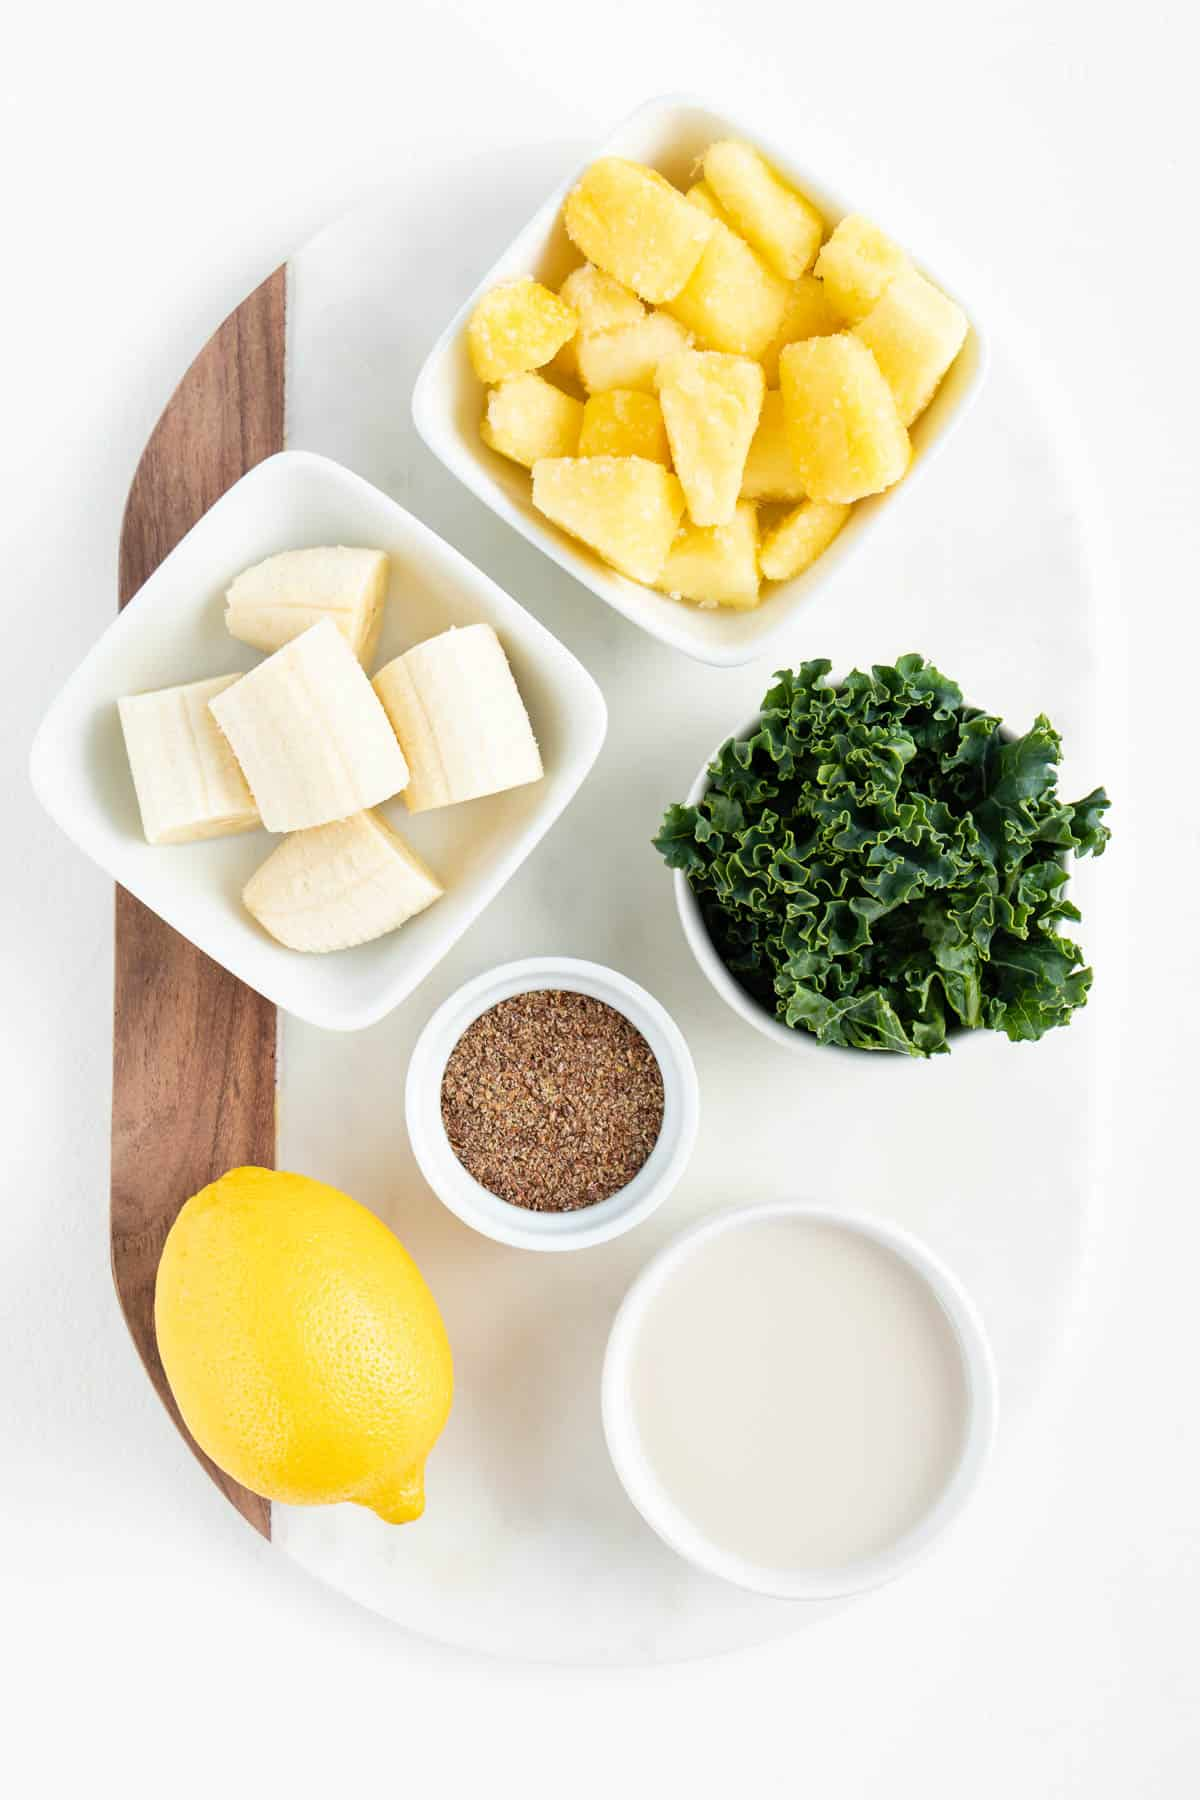 white bowls filled with sliced banana, pineapple, kale, flaxseed meal, lemon, and coconut milk on a white marble board